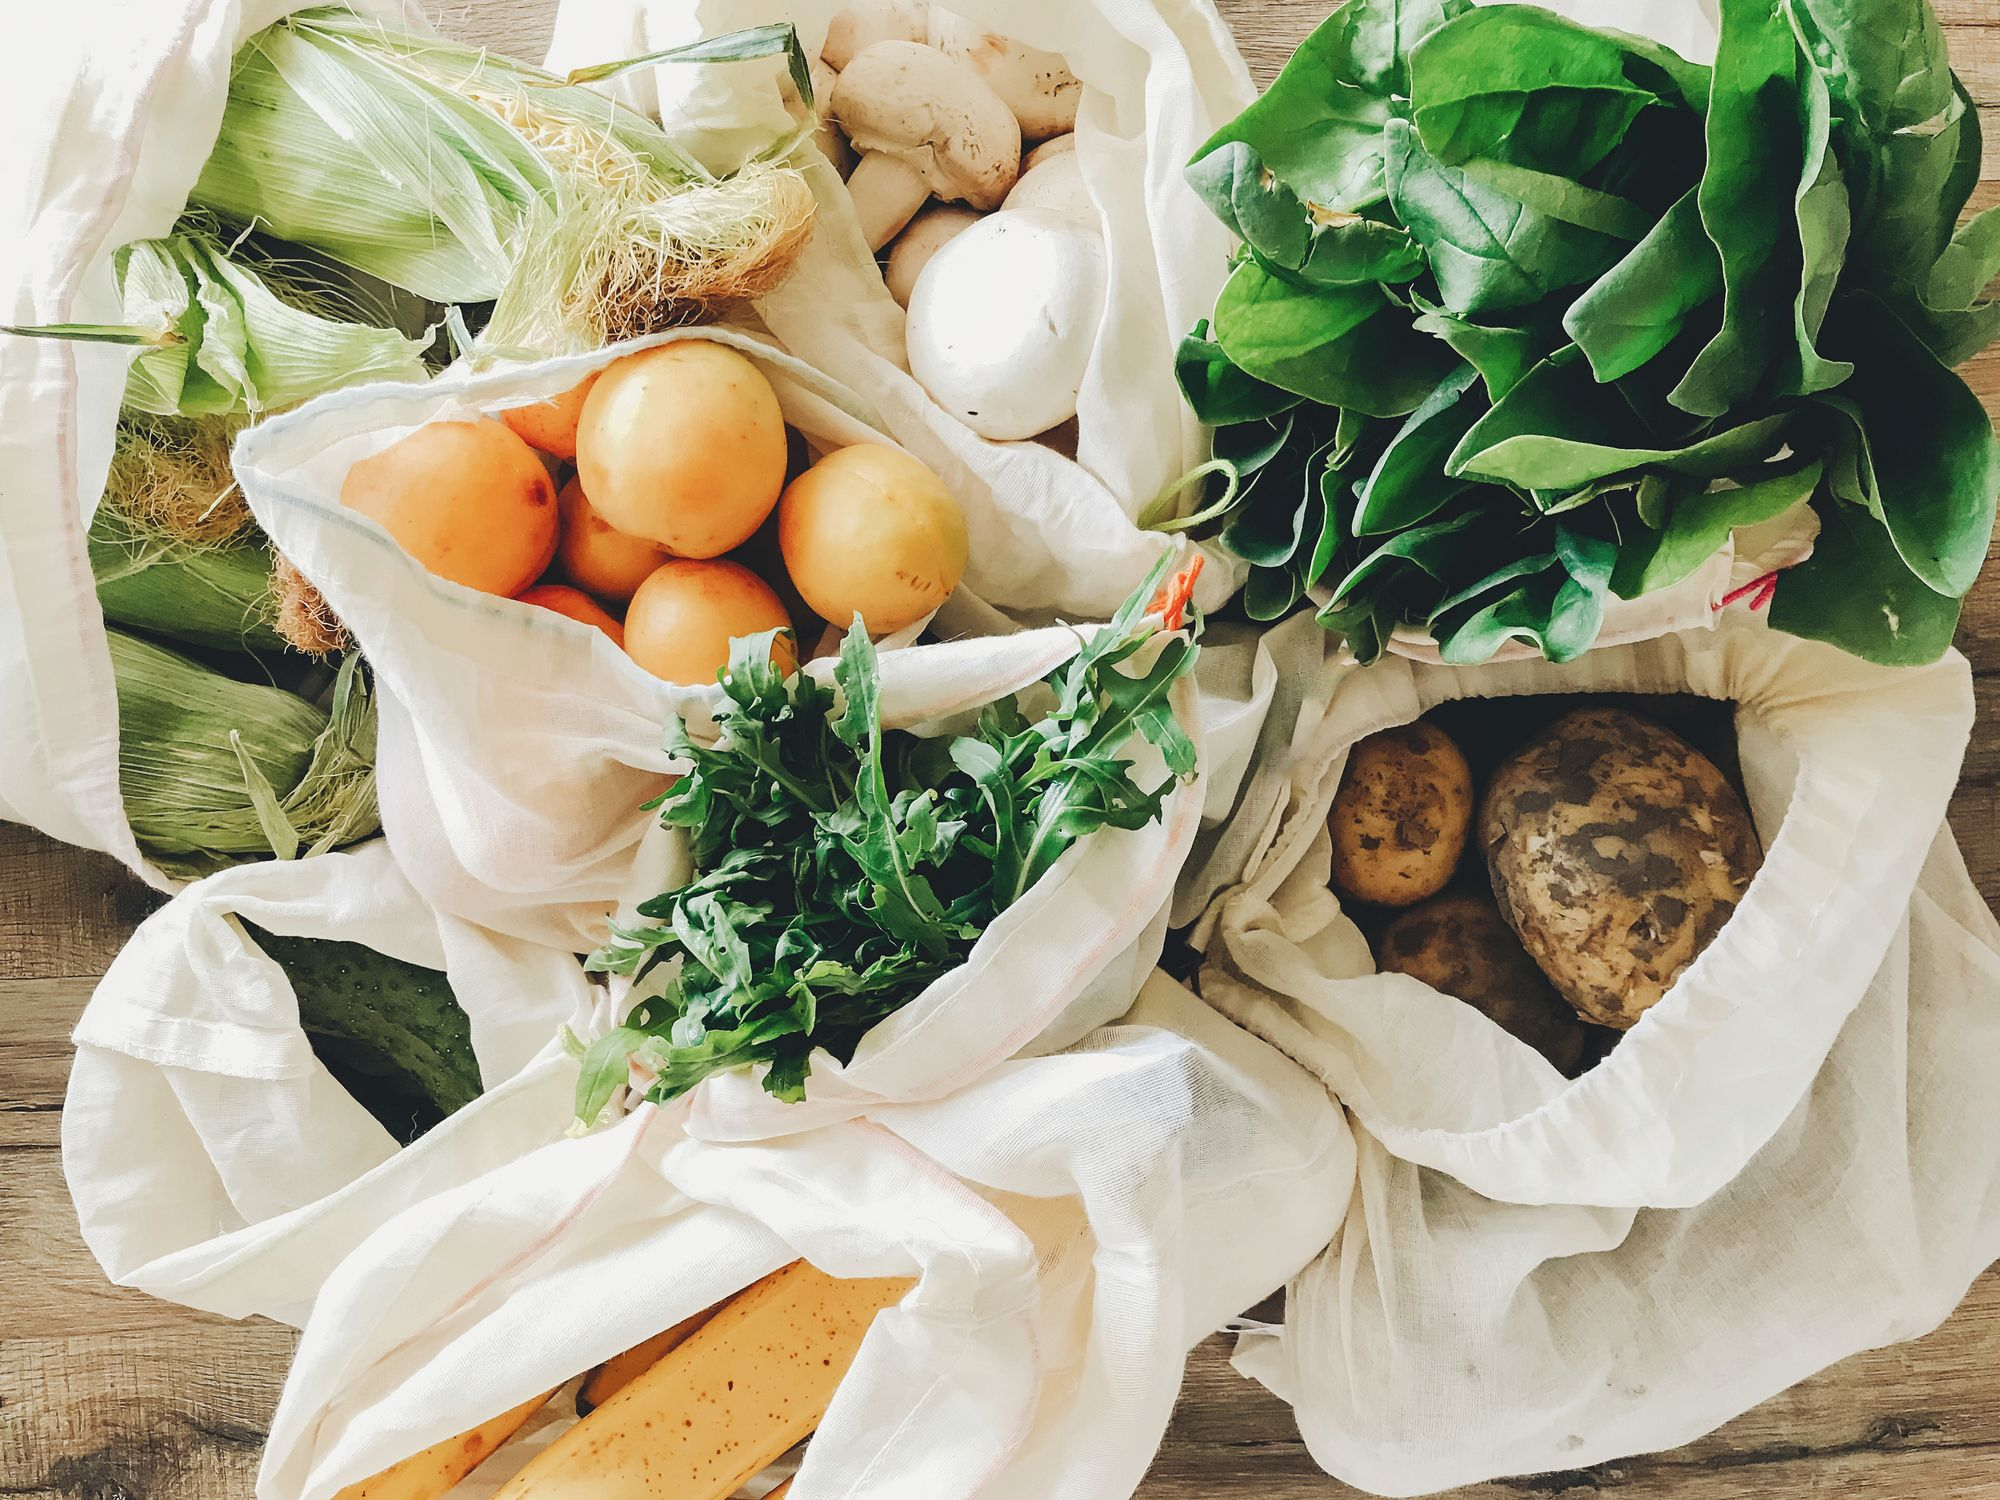 20 Grocery Store Choices To Help You Ditch Packaging and Reduce Waste